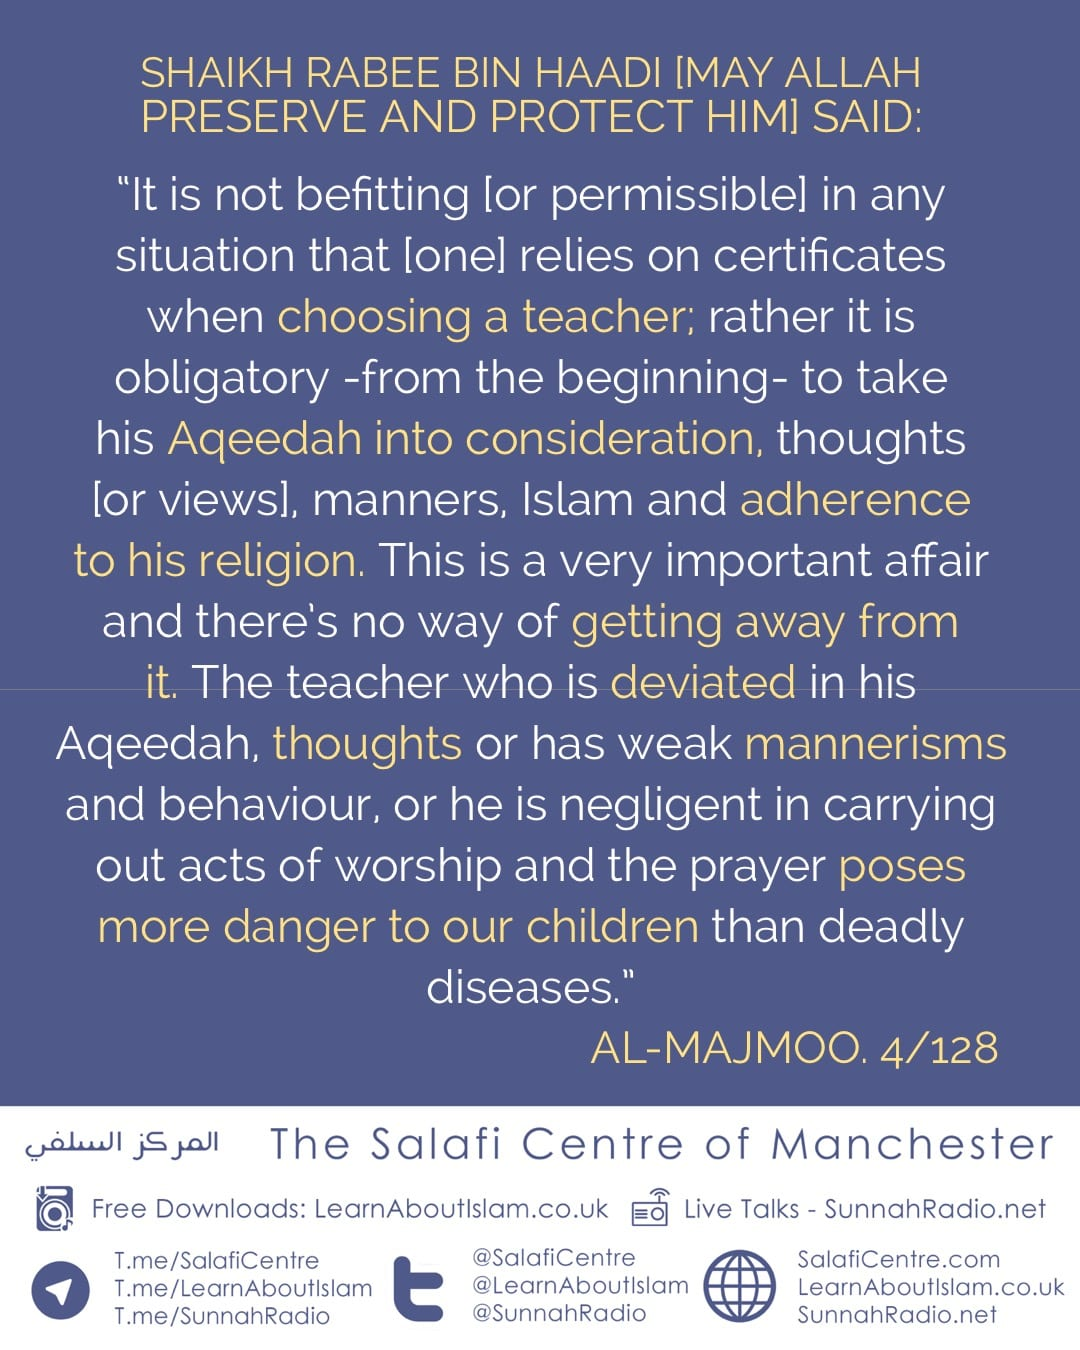 Foundations for Our Teaching Establishments: Giving Precedent and Emphasis to The Aqeedah Over Certificates When Employing Teachers – Shaykh Rabee' B. Haadi